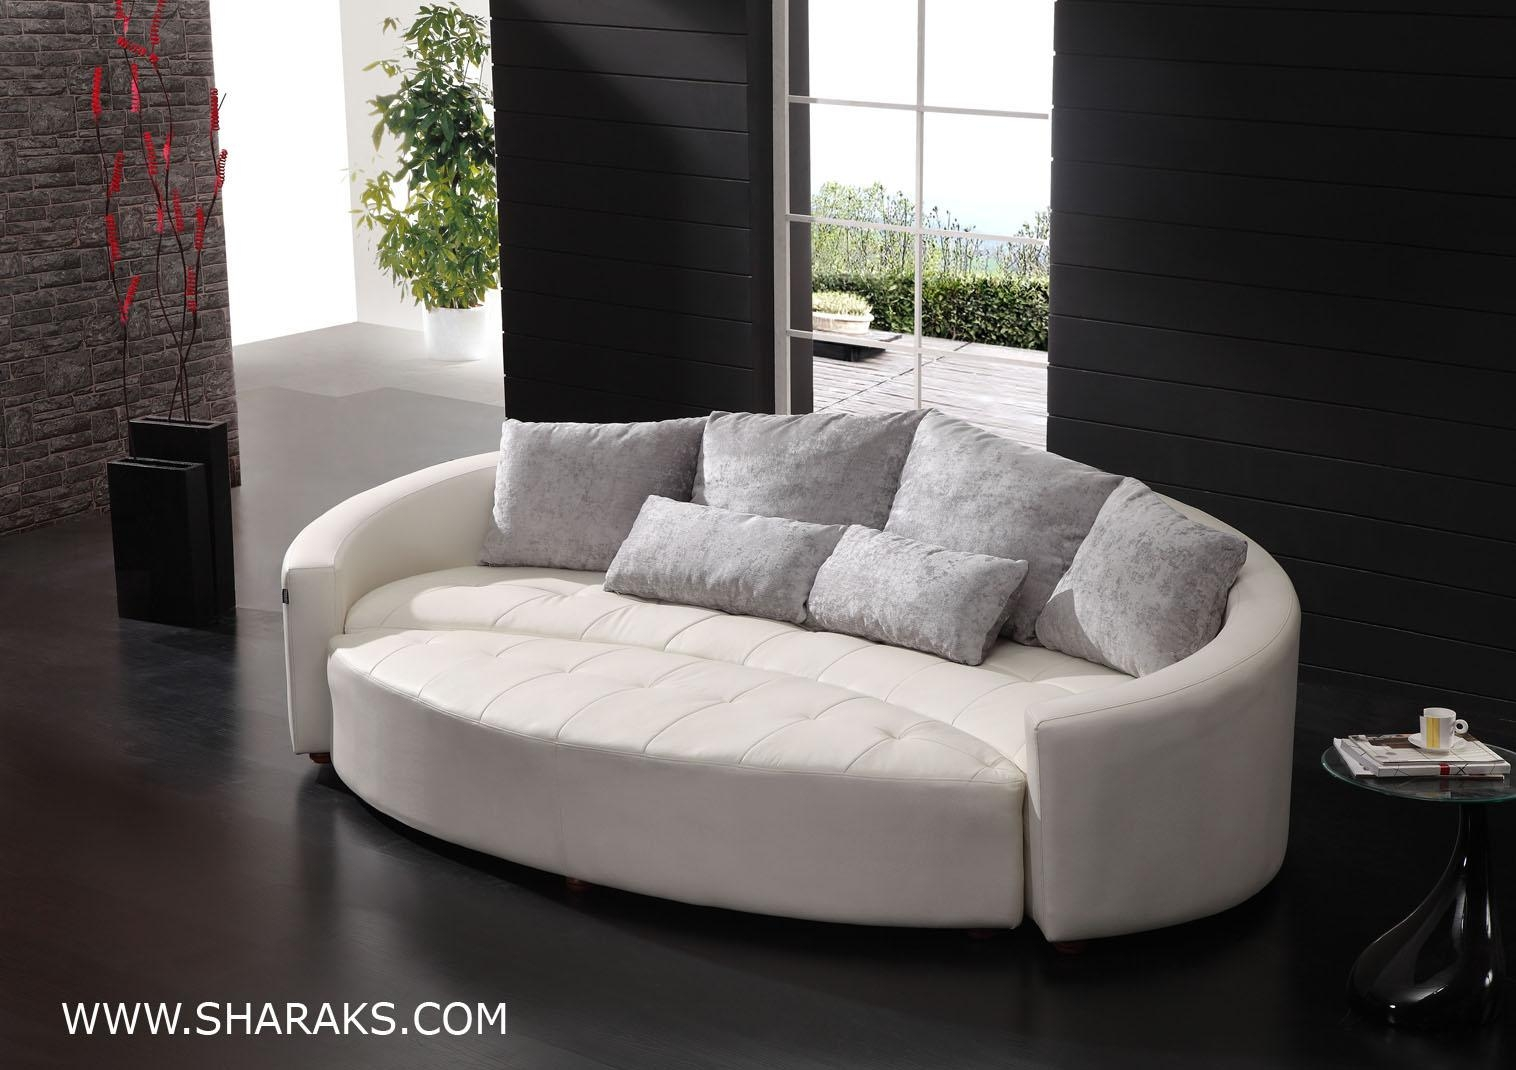 Sofas Center : Inexpensive Sectional Sofas For Small Spaces Best Within Inexpensive Sectional Sofas For Small Spaces (Image 20 of 20)